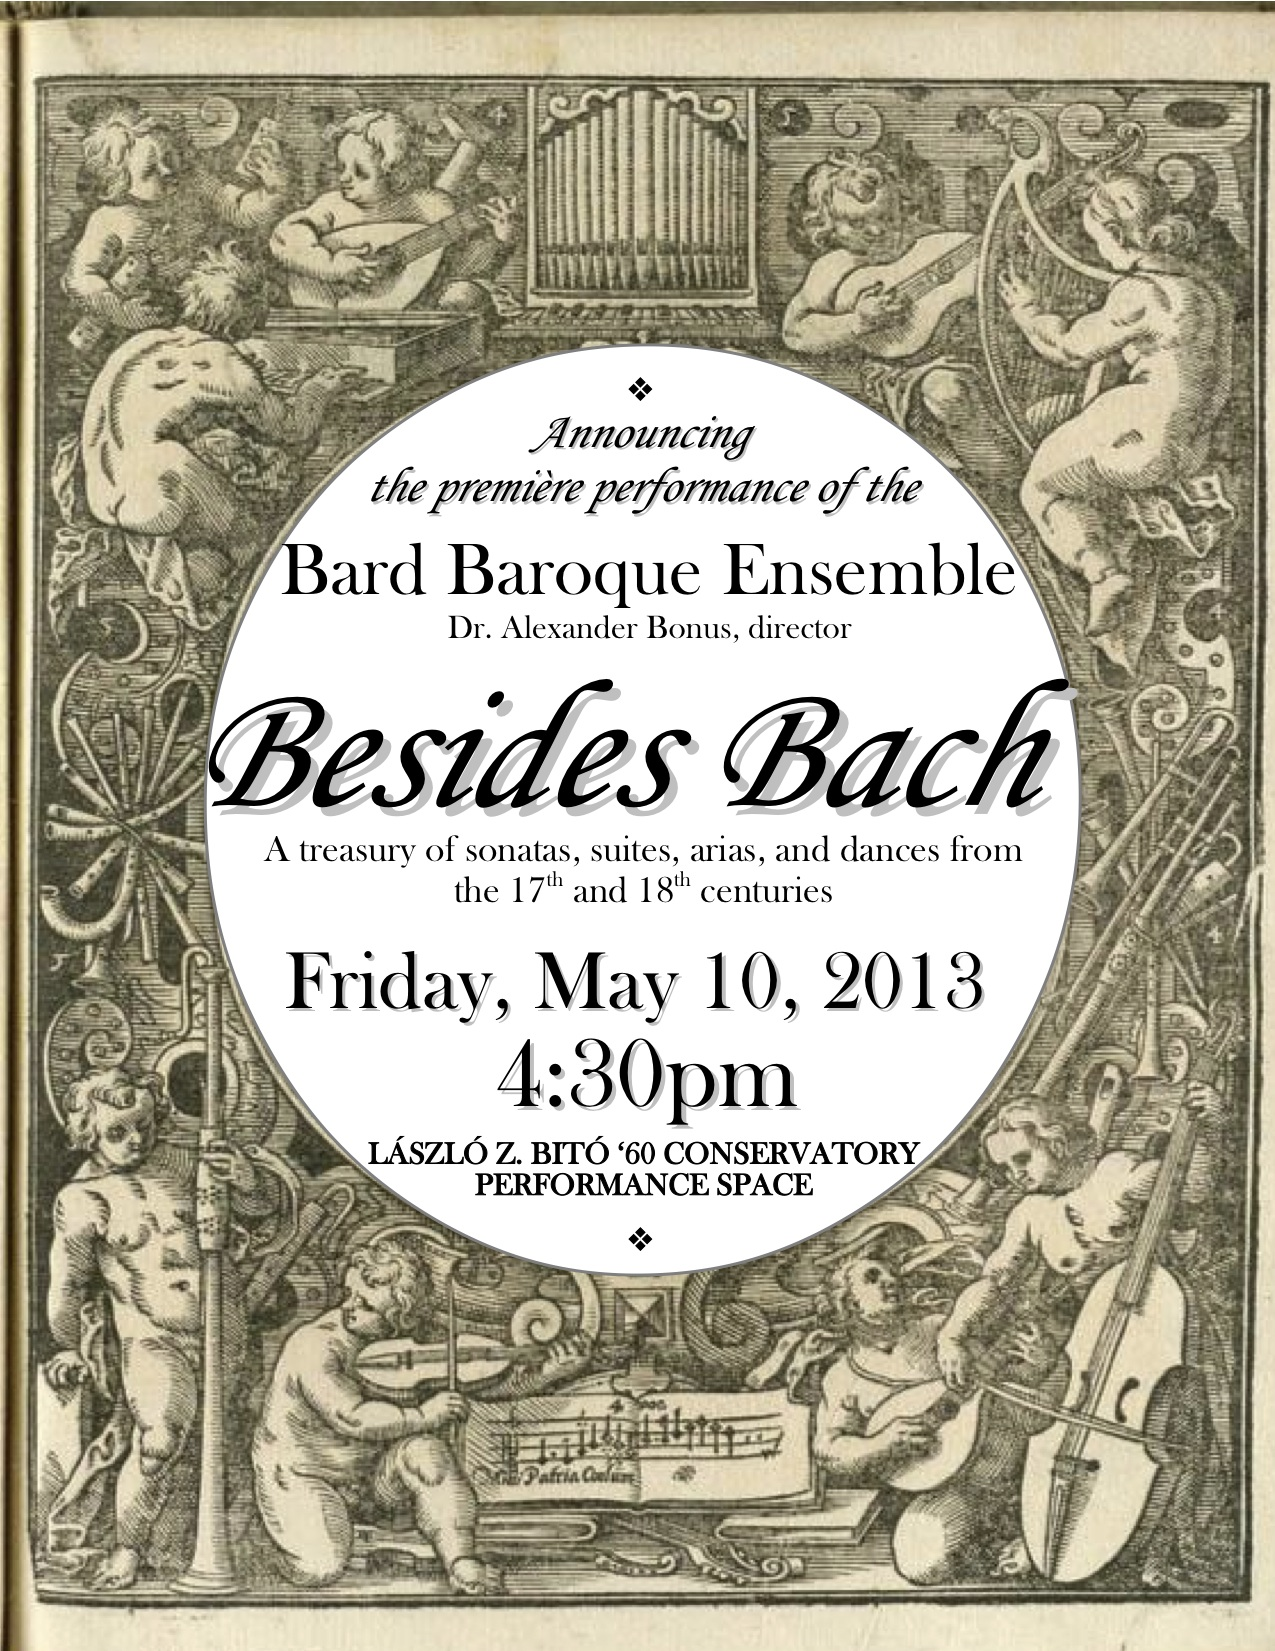 [Premiere Performance of the Bard Baroque Ensemble]